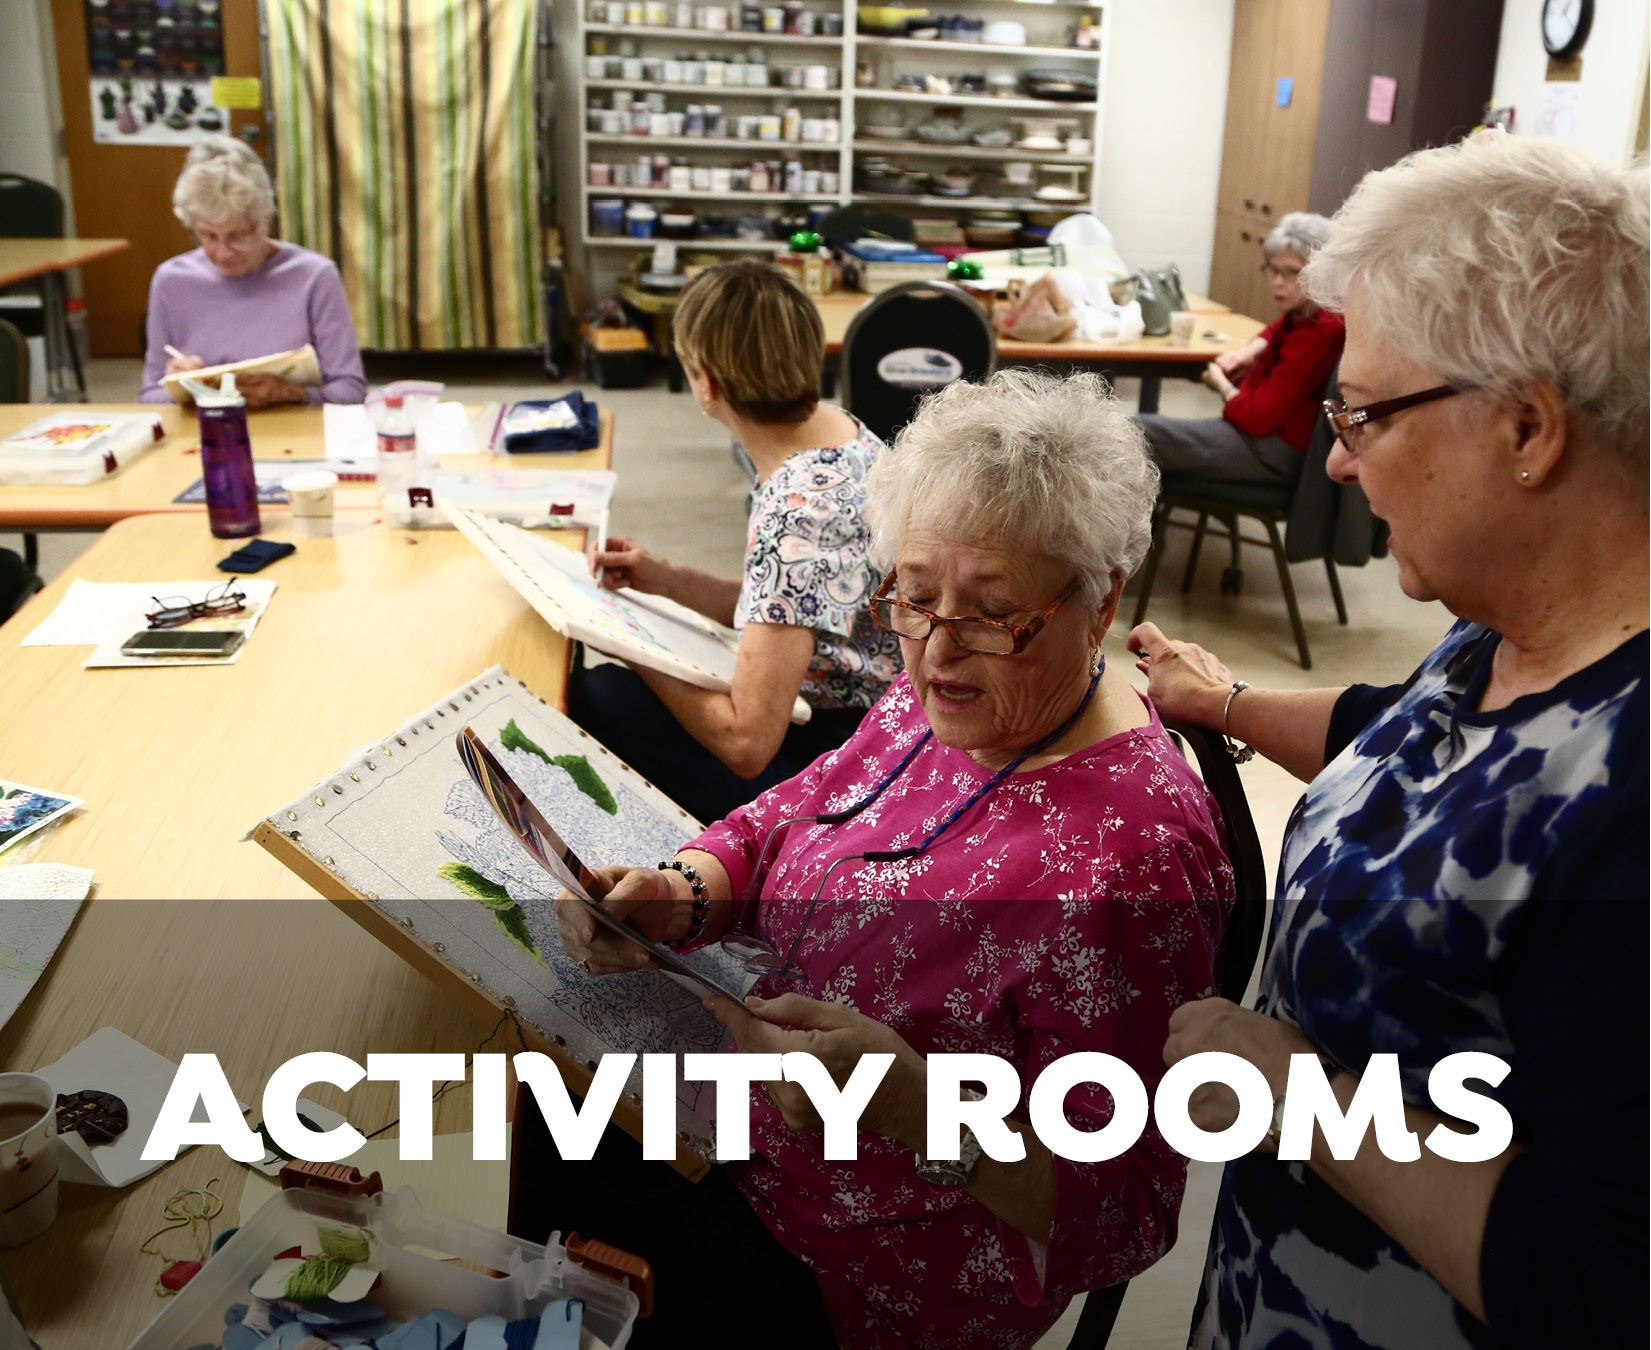 Activity Rooms - adults in art classroom